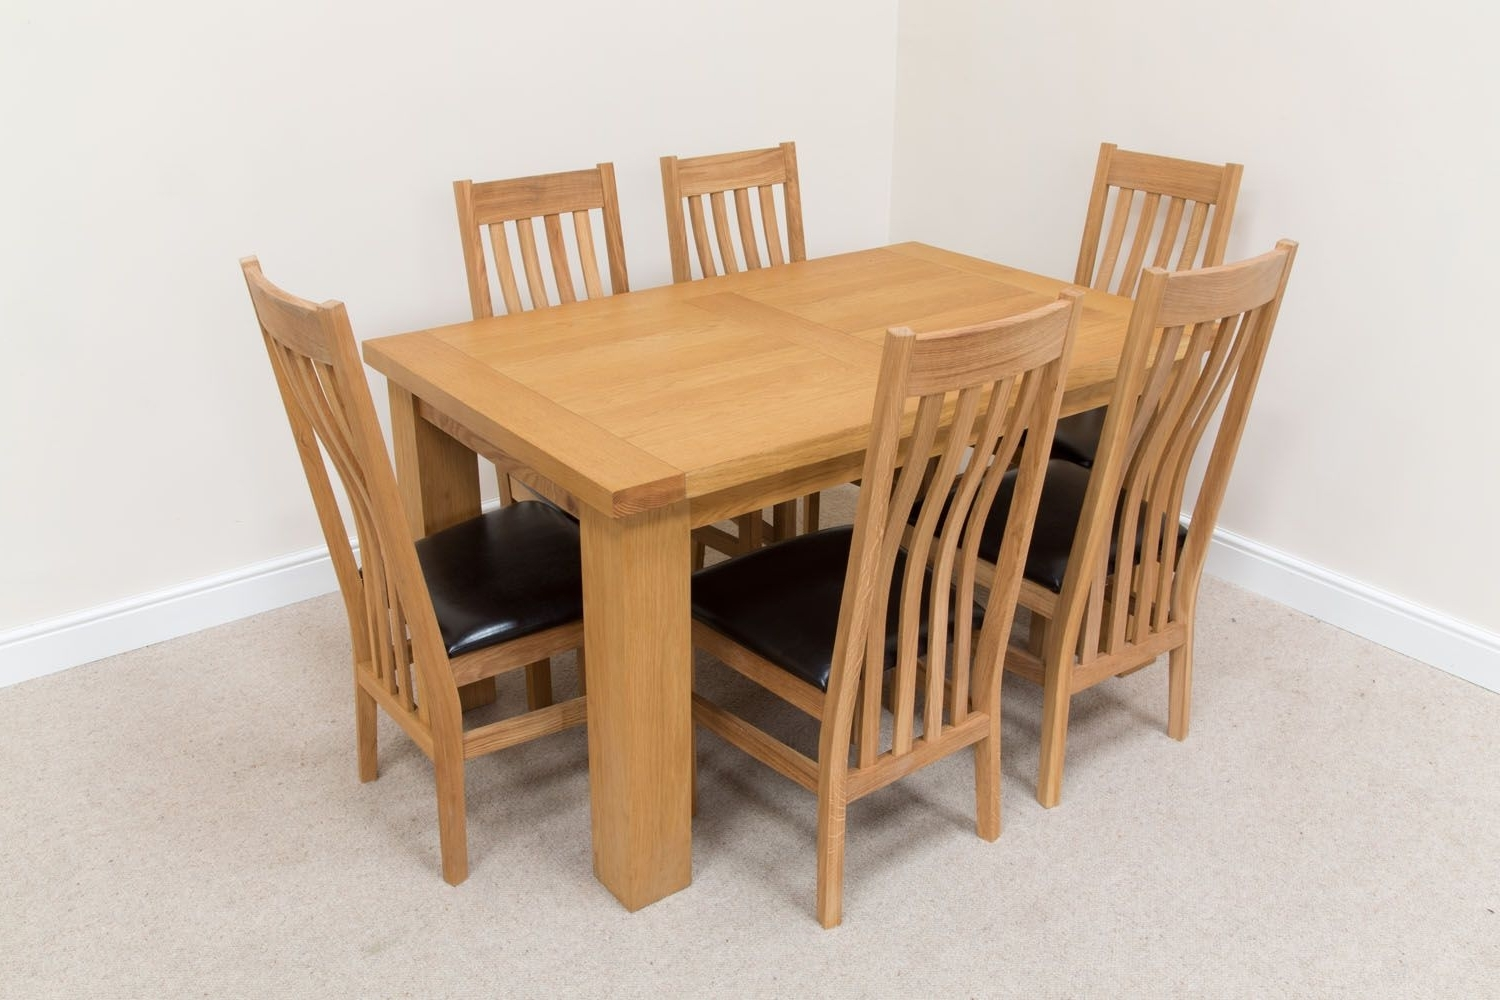 Most Current Riga 6 Seater Oak Dining Table Set Brown Leather Chairs Inside Oak Dining Set 6 Chairs (View 9 of 25)